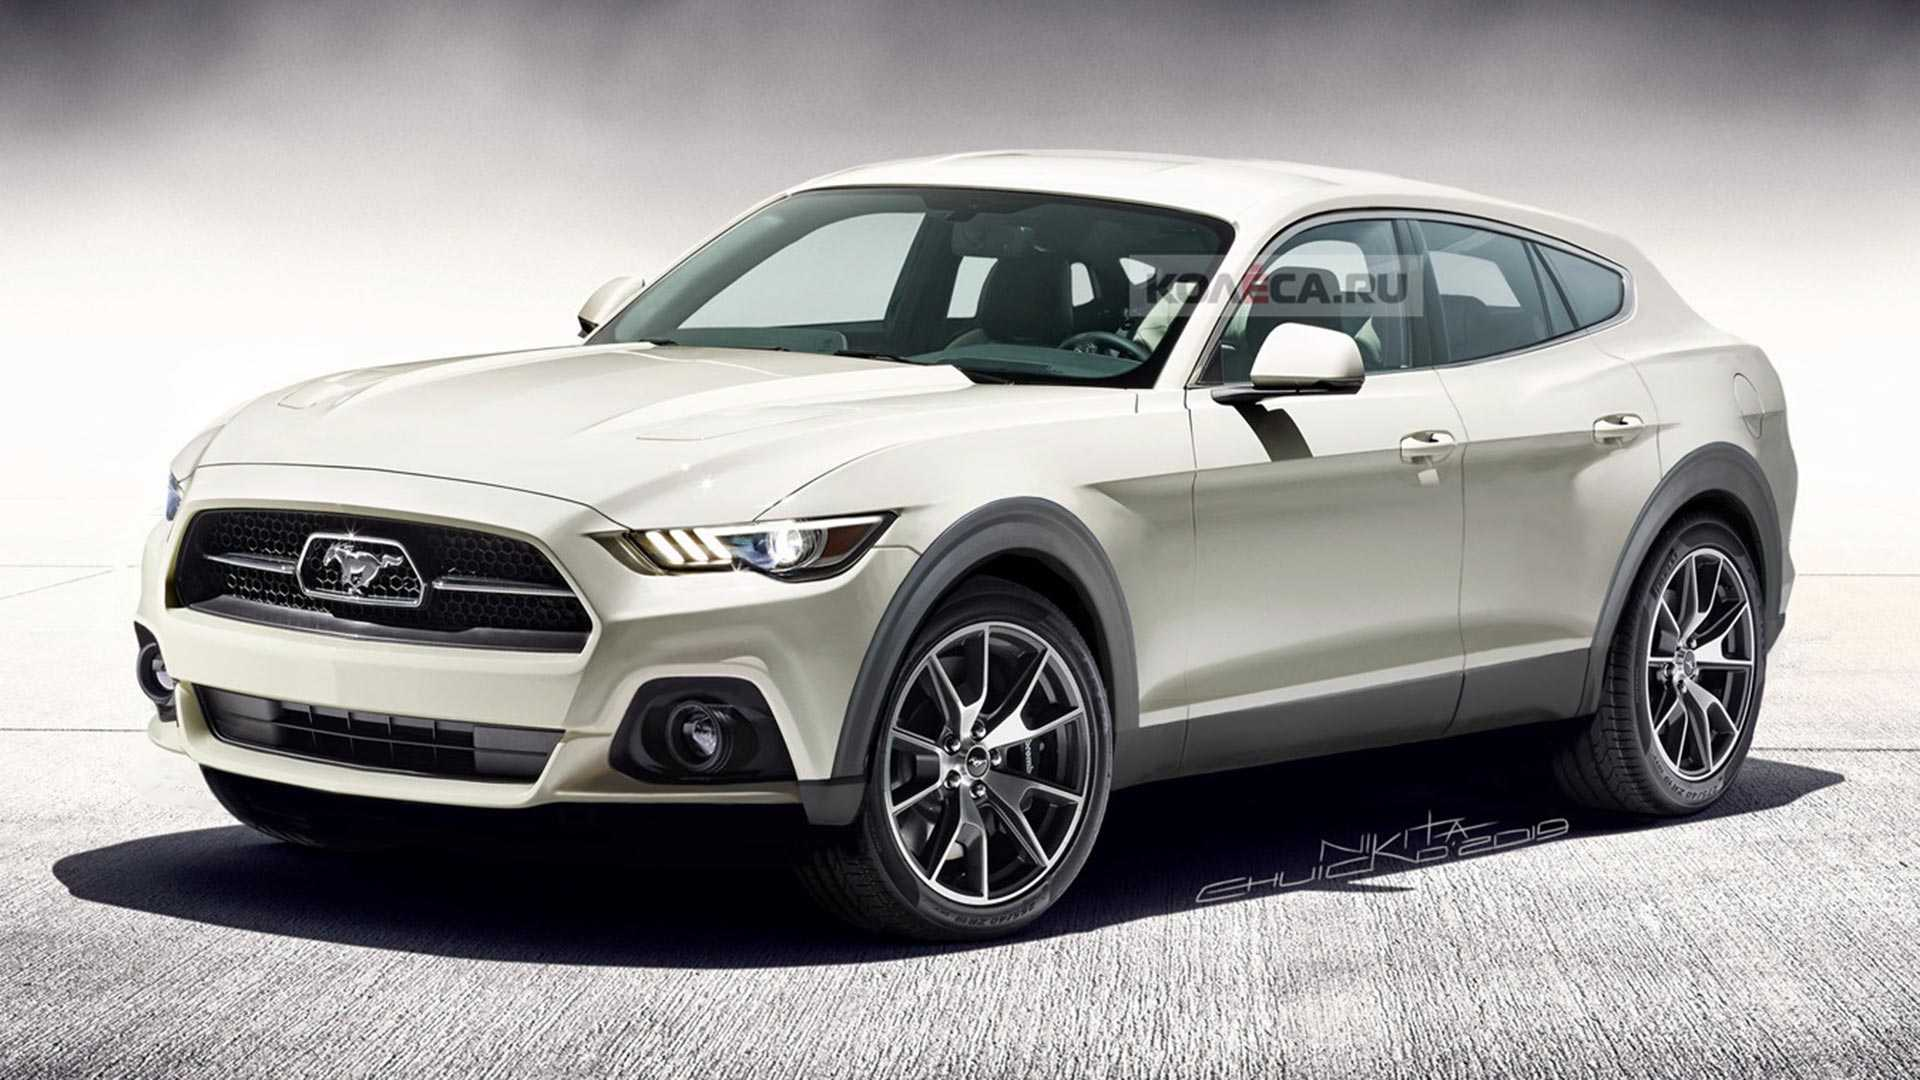 Ford Mustang Electric SUV rendering